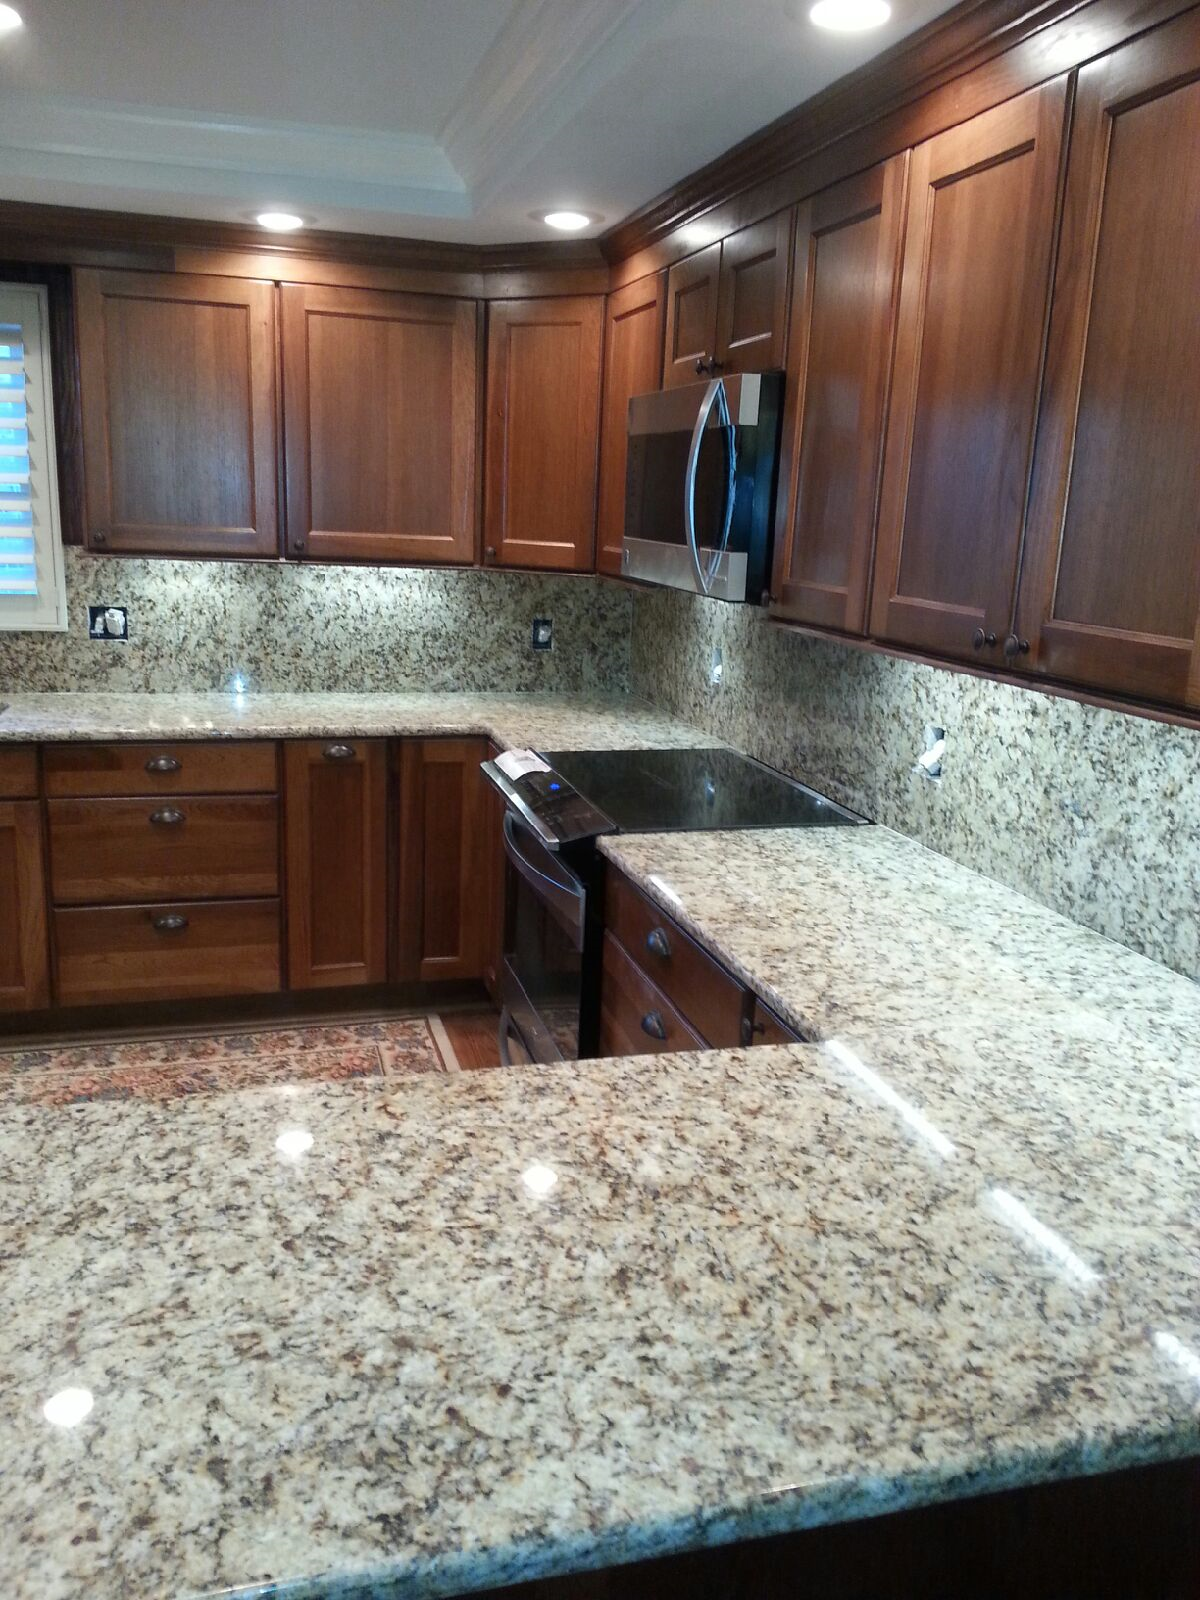 Granite Counter Tops : What s the best way to match countertops with cabinetry